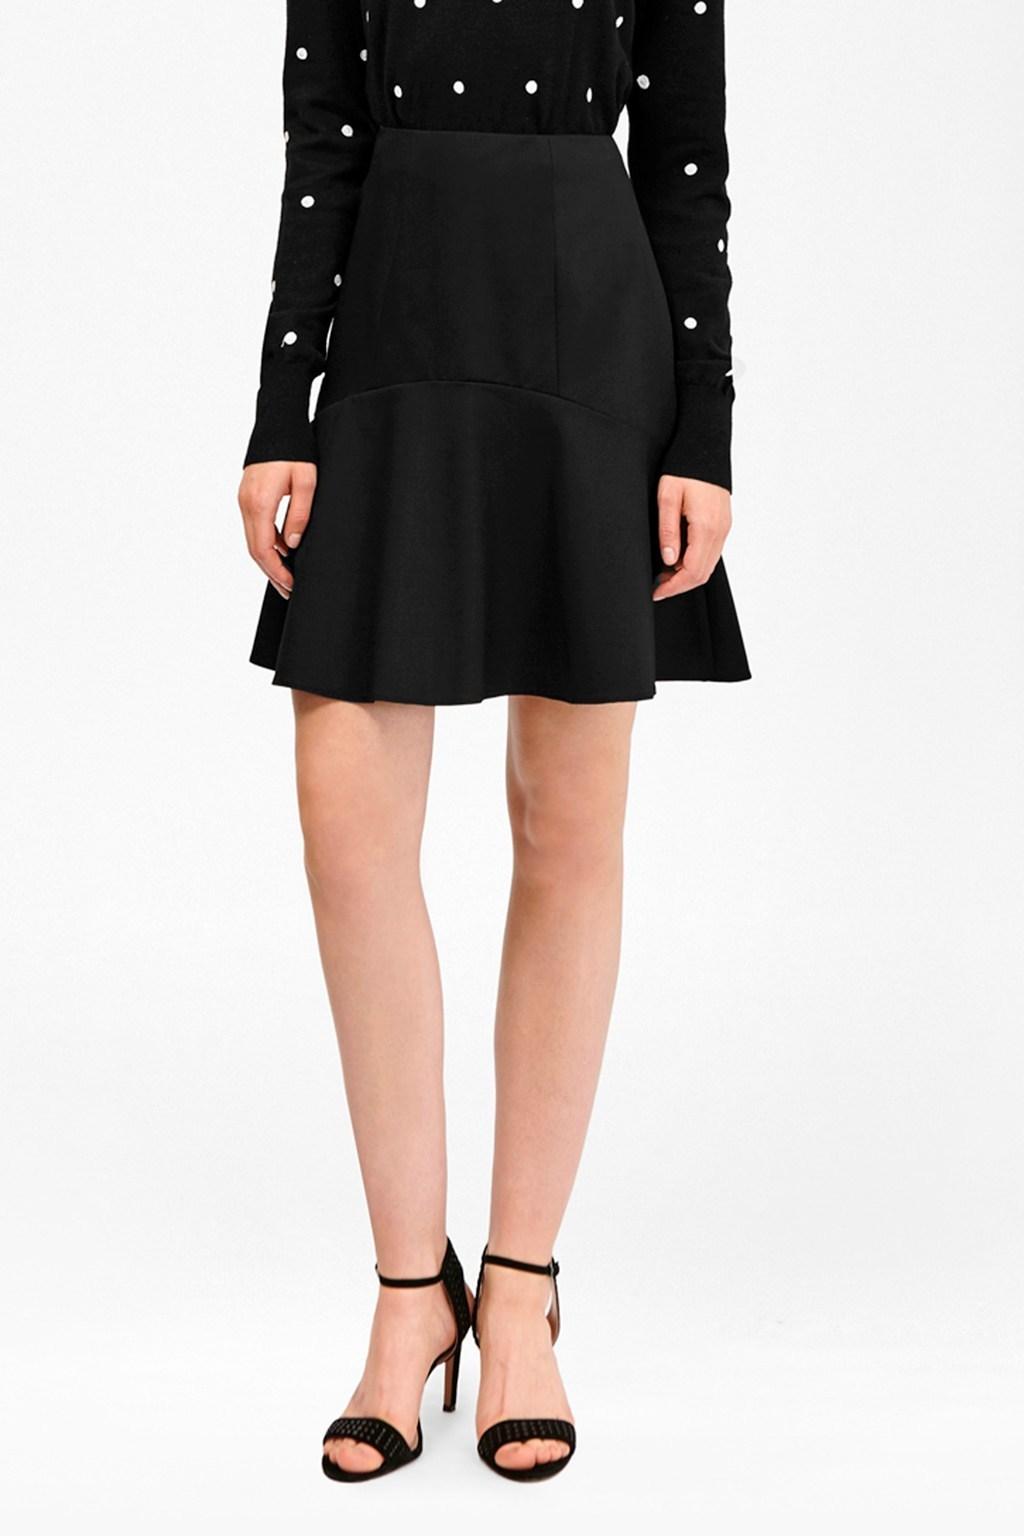 Chelsea Suiting Flared Skirt Black - pattern: plain; style: full/prom skirt; fit: loose/voluminous; waist: high rise; predominant colour: black; occasions: work, occasion; length: just above the knee; fibres: wool - mix; hip detail: subtle/flattering hip detail; pattern type: fabric; texture group: woven light midweight; wardrobe: basic; season: a/w 2016